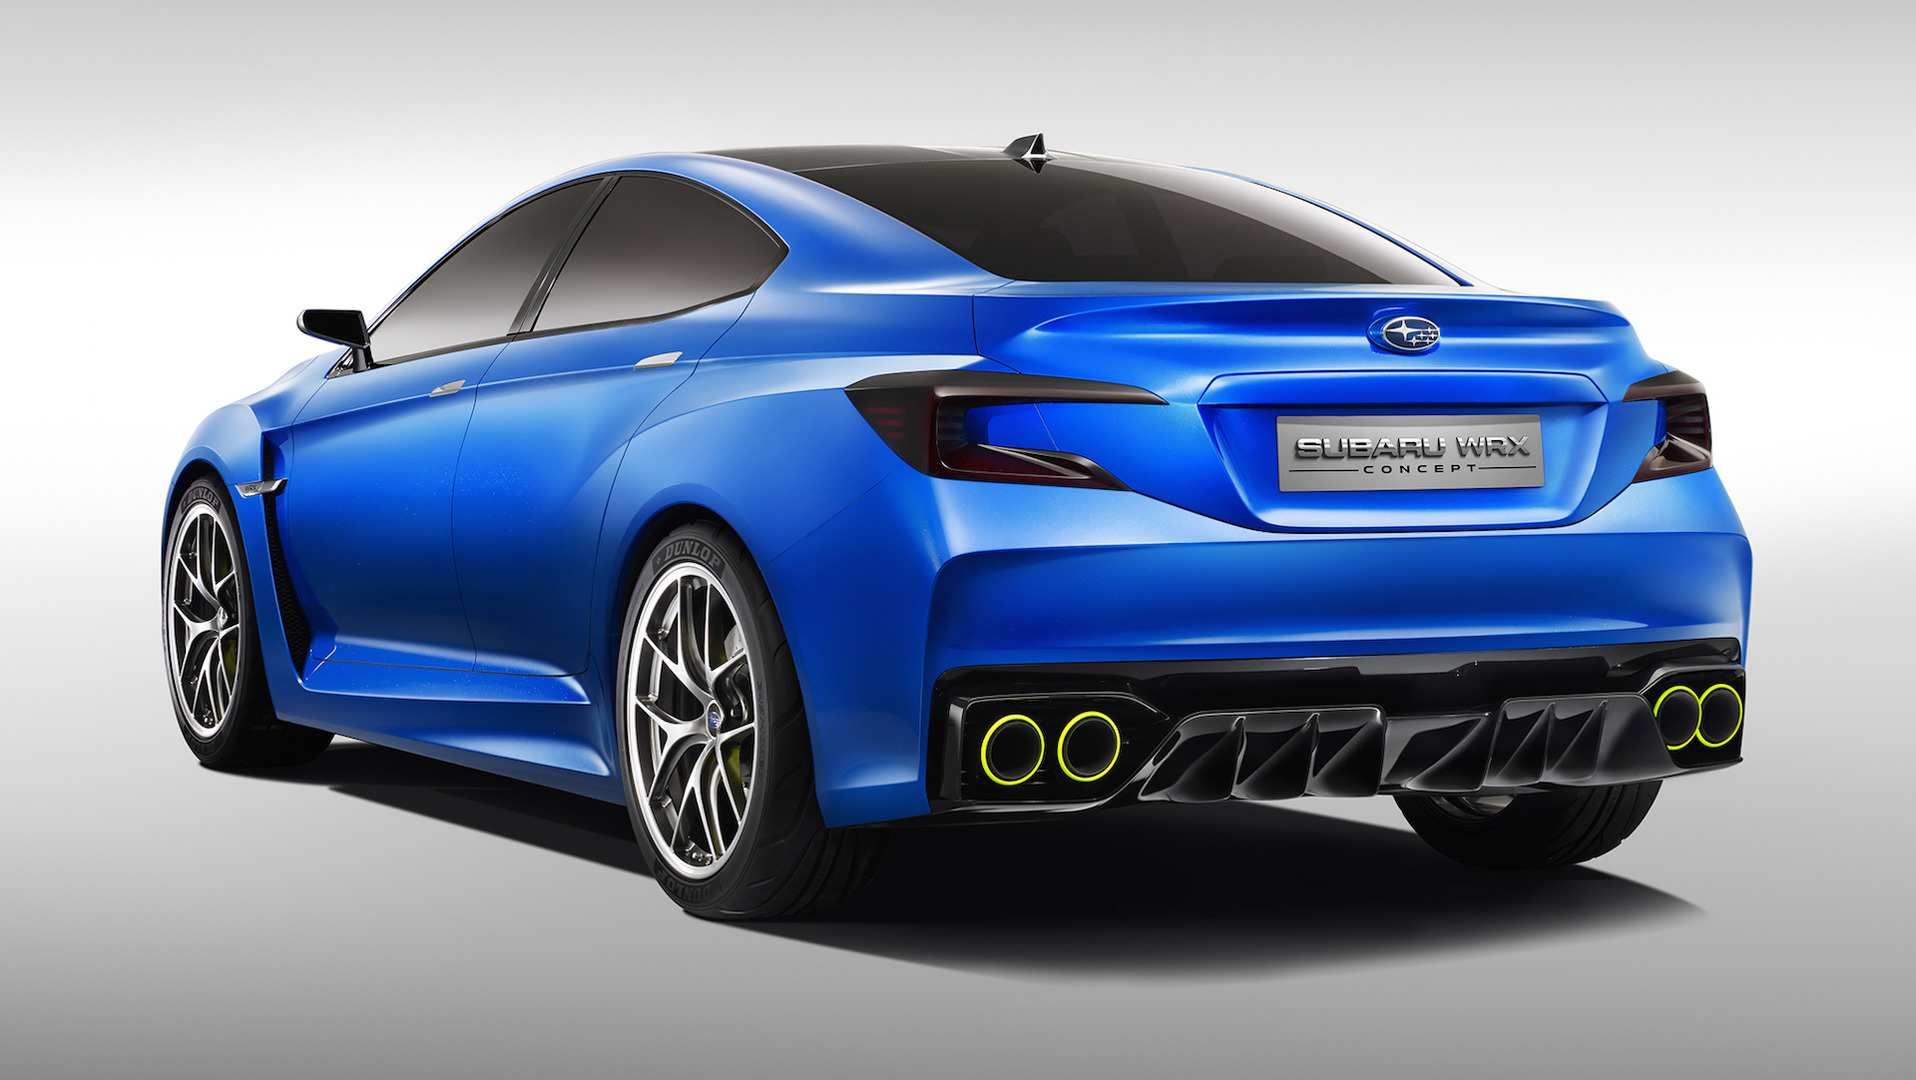 38 New 2020 Subaru Sti Concept Pictures for 2020 Subaru Sti Concept